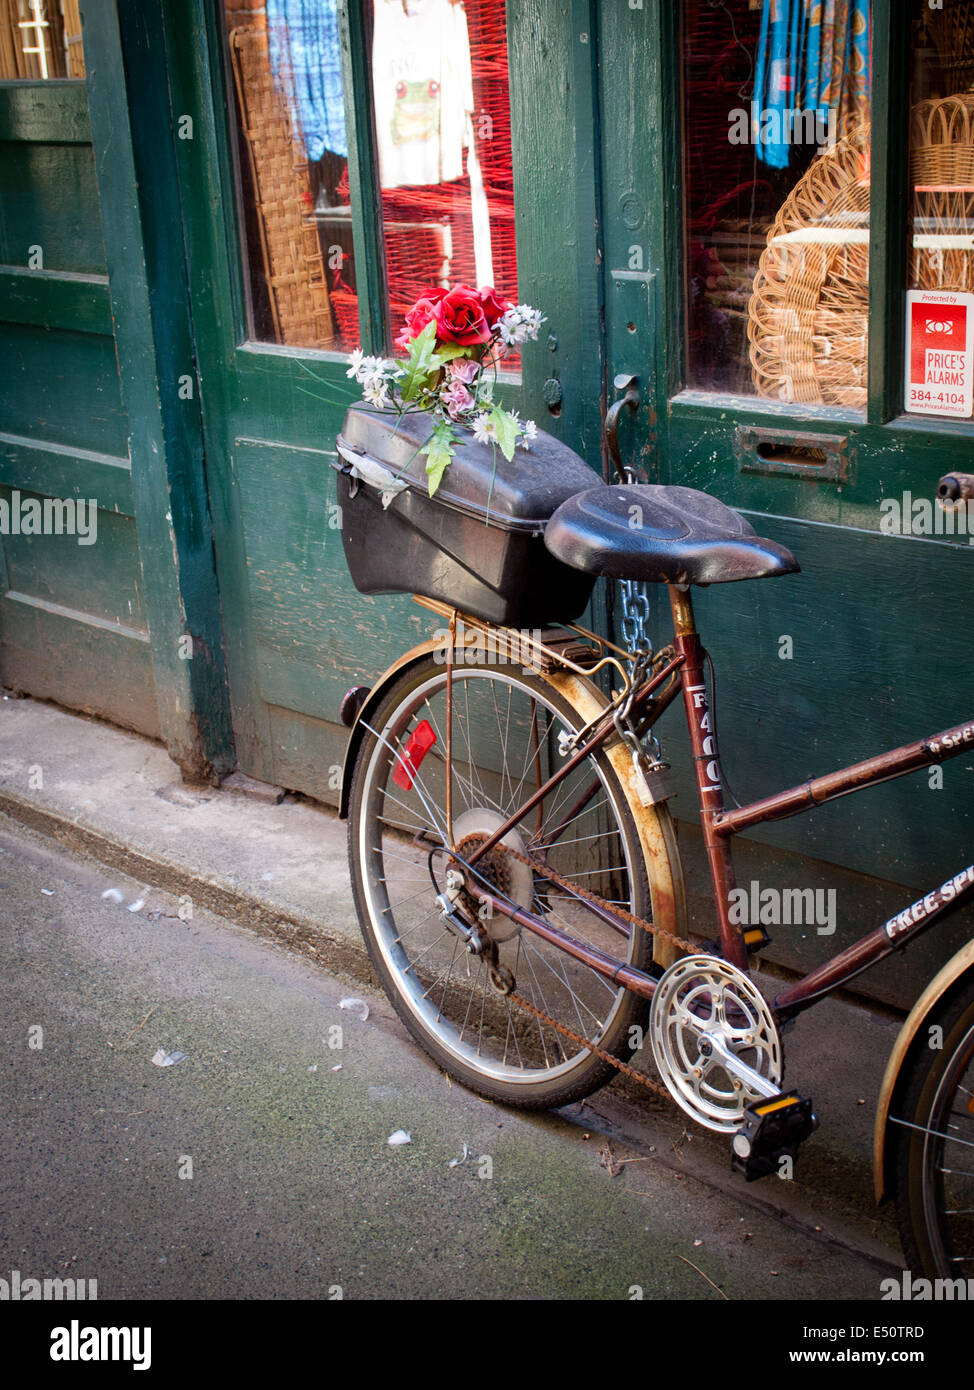 A city bicycle with flowers in the back parked in Fan Tan Alley in Victoria, British Columbia, Canada. - Stock Image